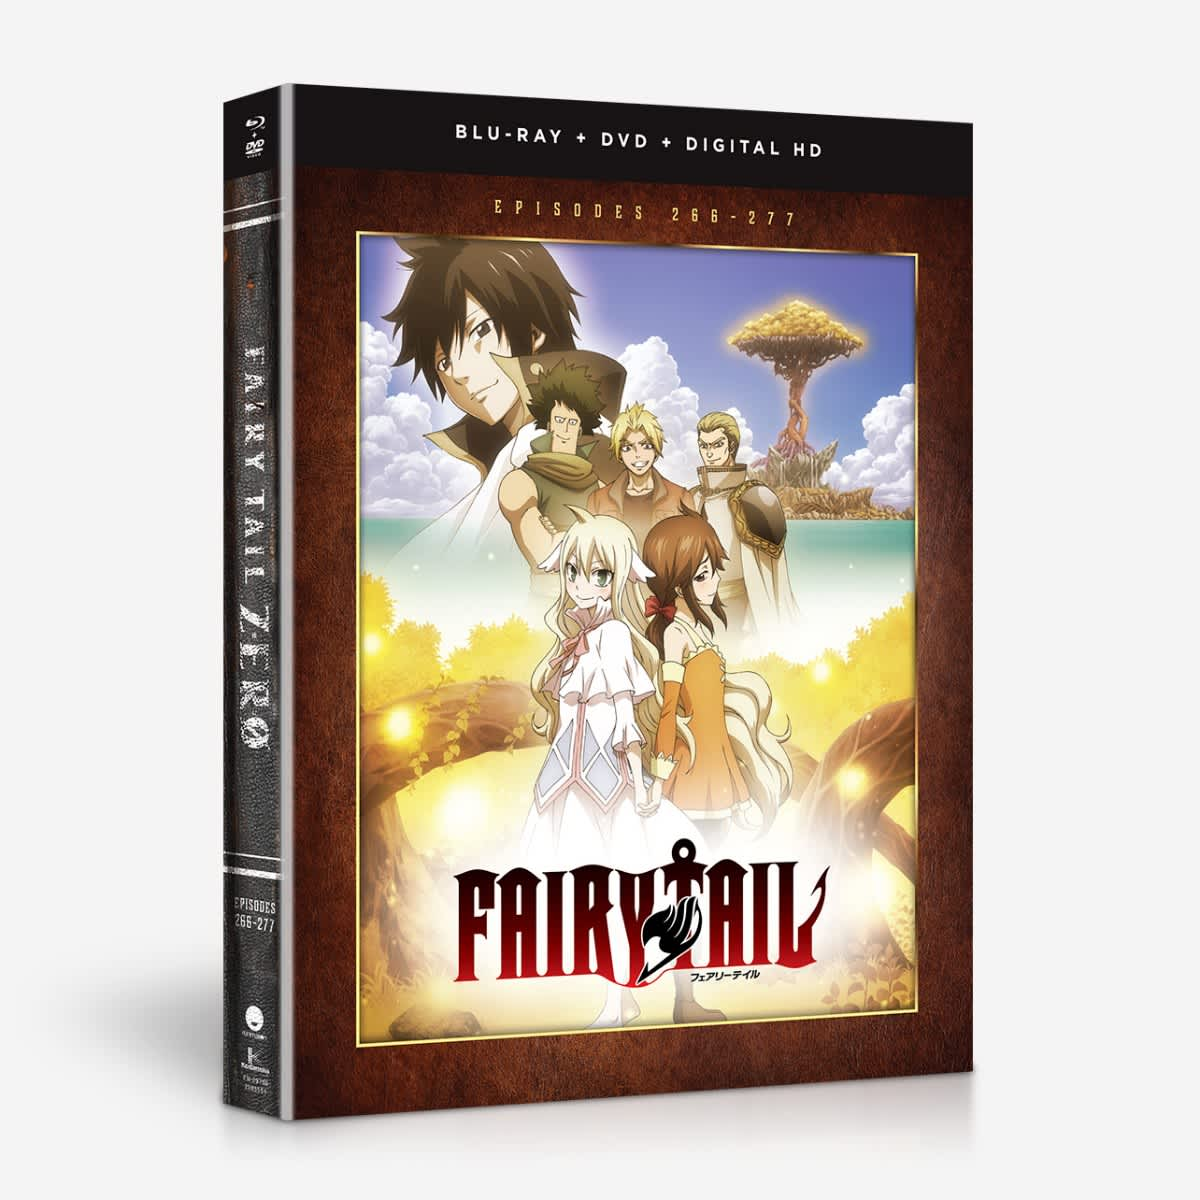 Fairy Tail - Zero - Season 8 - BD... Home Video